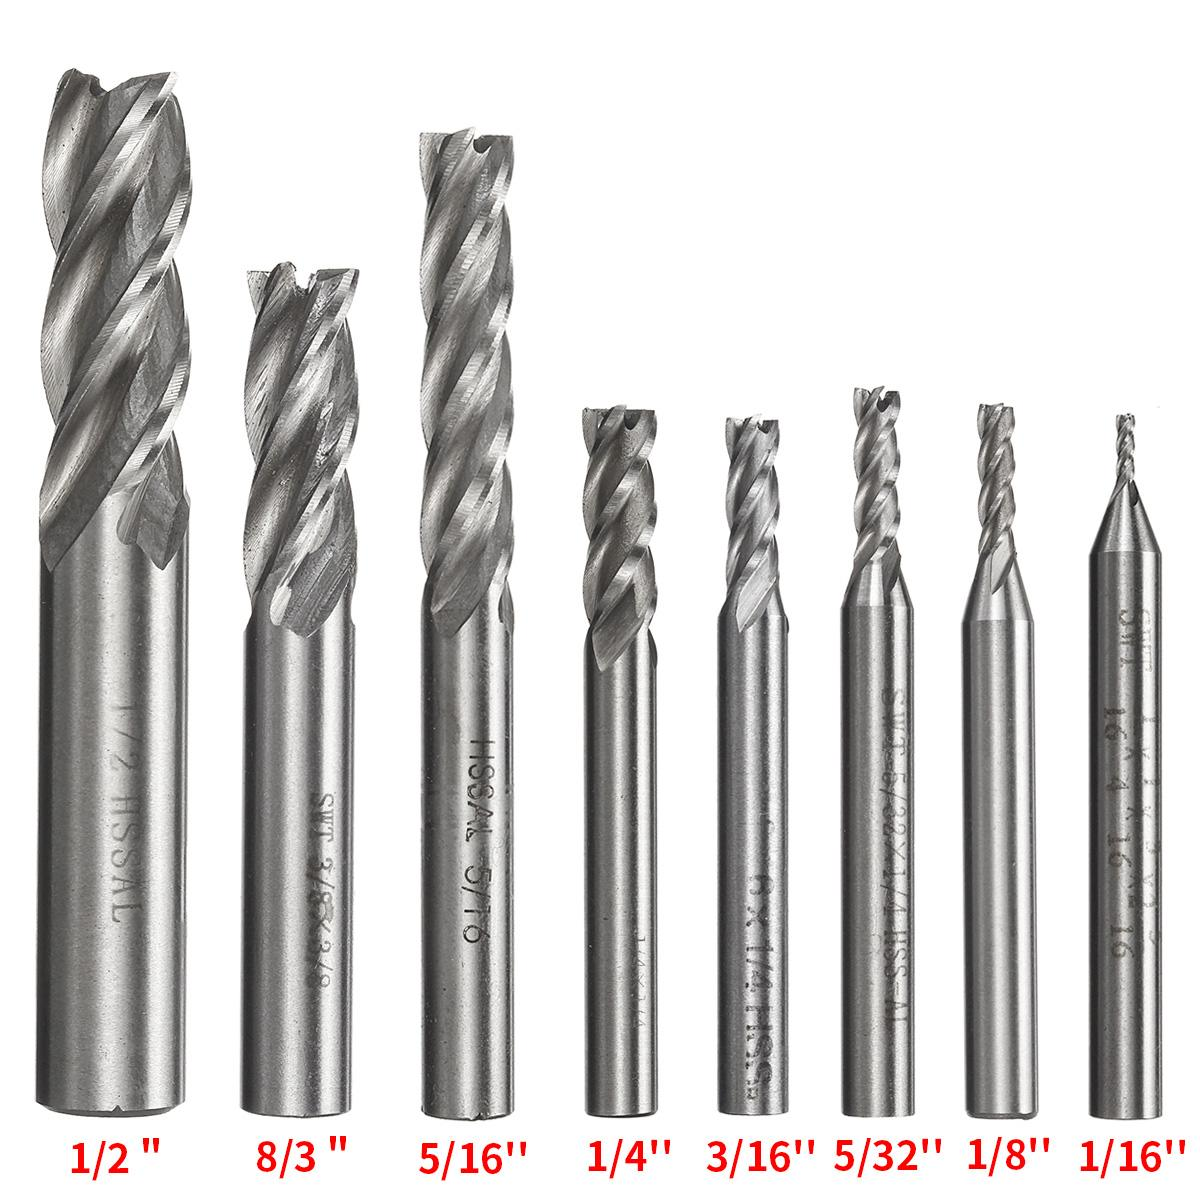 8 Pcs 4 Flute End Mill High Speed Steel Cutter CNC Drill Bit Tools USA